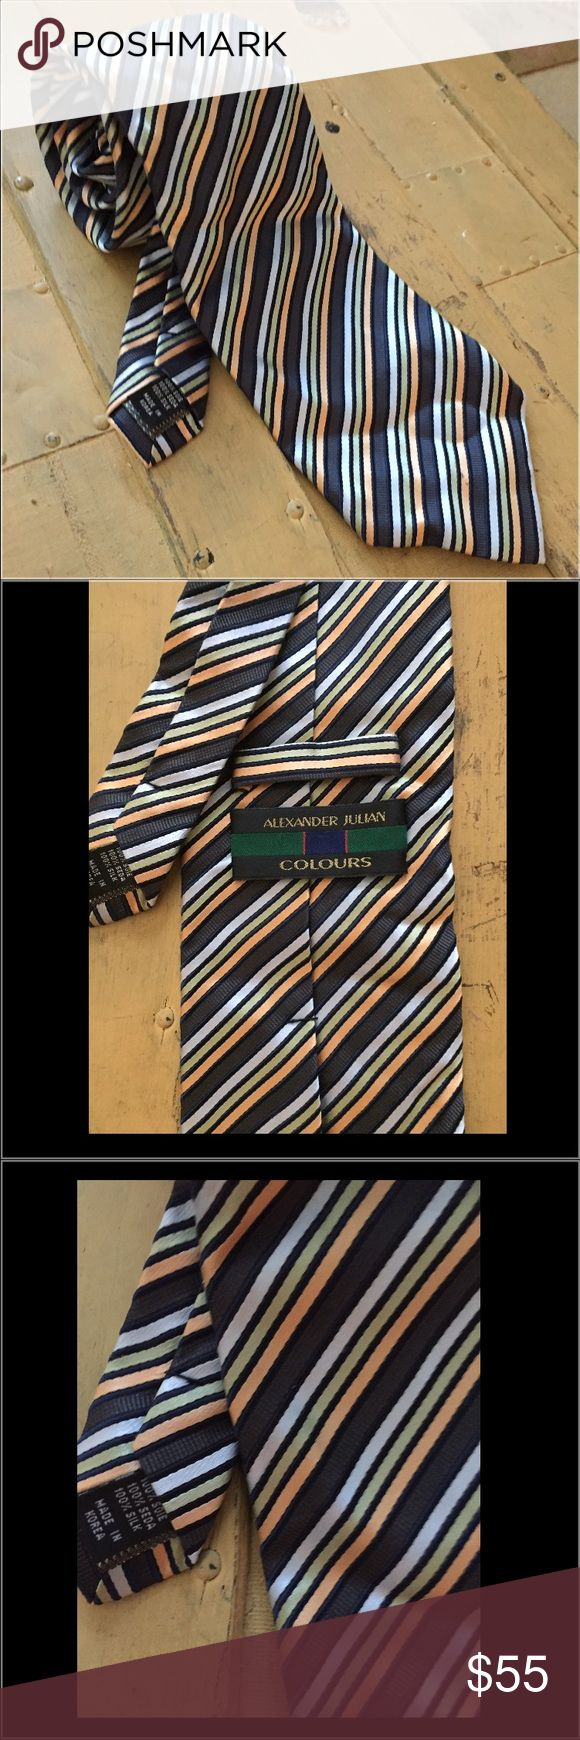 NWOT ALEXANDER JULIAN 100% SILK NECK TIE STRIPE NWOT ALEXANDER JULIAN BRAND 100% SILK NECK TIE STRIPE MENS OS $98 100% Authentic ALEXANDER JULIAN COLOURS BRAND  Size: MENS OS (REG) Color: multi, stripe Condition:  New without tags, store display; *see photos for specific detail Material:  100% SILK Made in Korea Combined shipping discount with purchase of additional items. All items come from a CLEAN, SMOKE-FREE home Brooks Brothers Accessories Ties